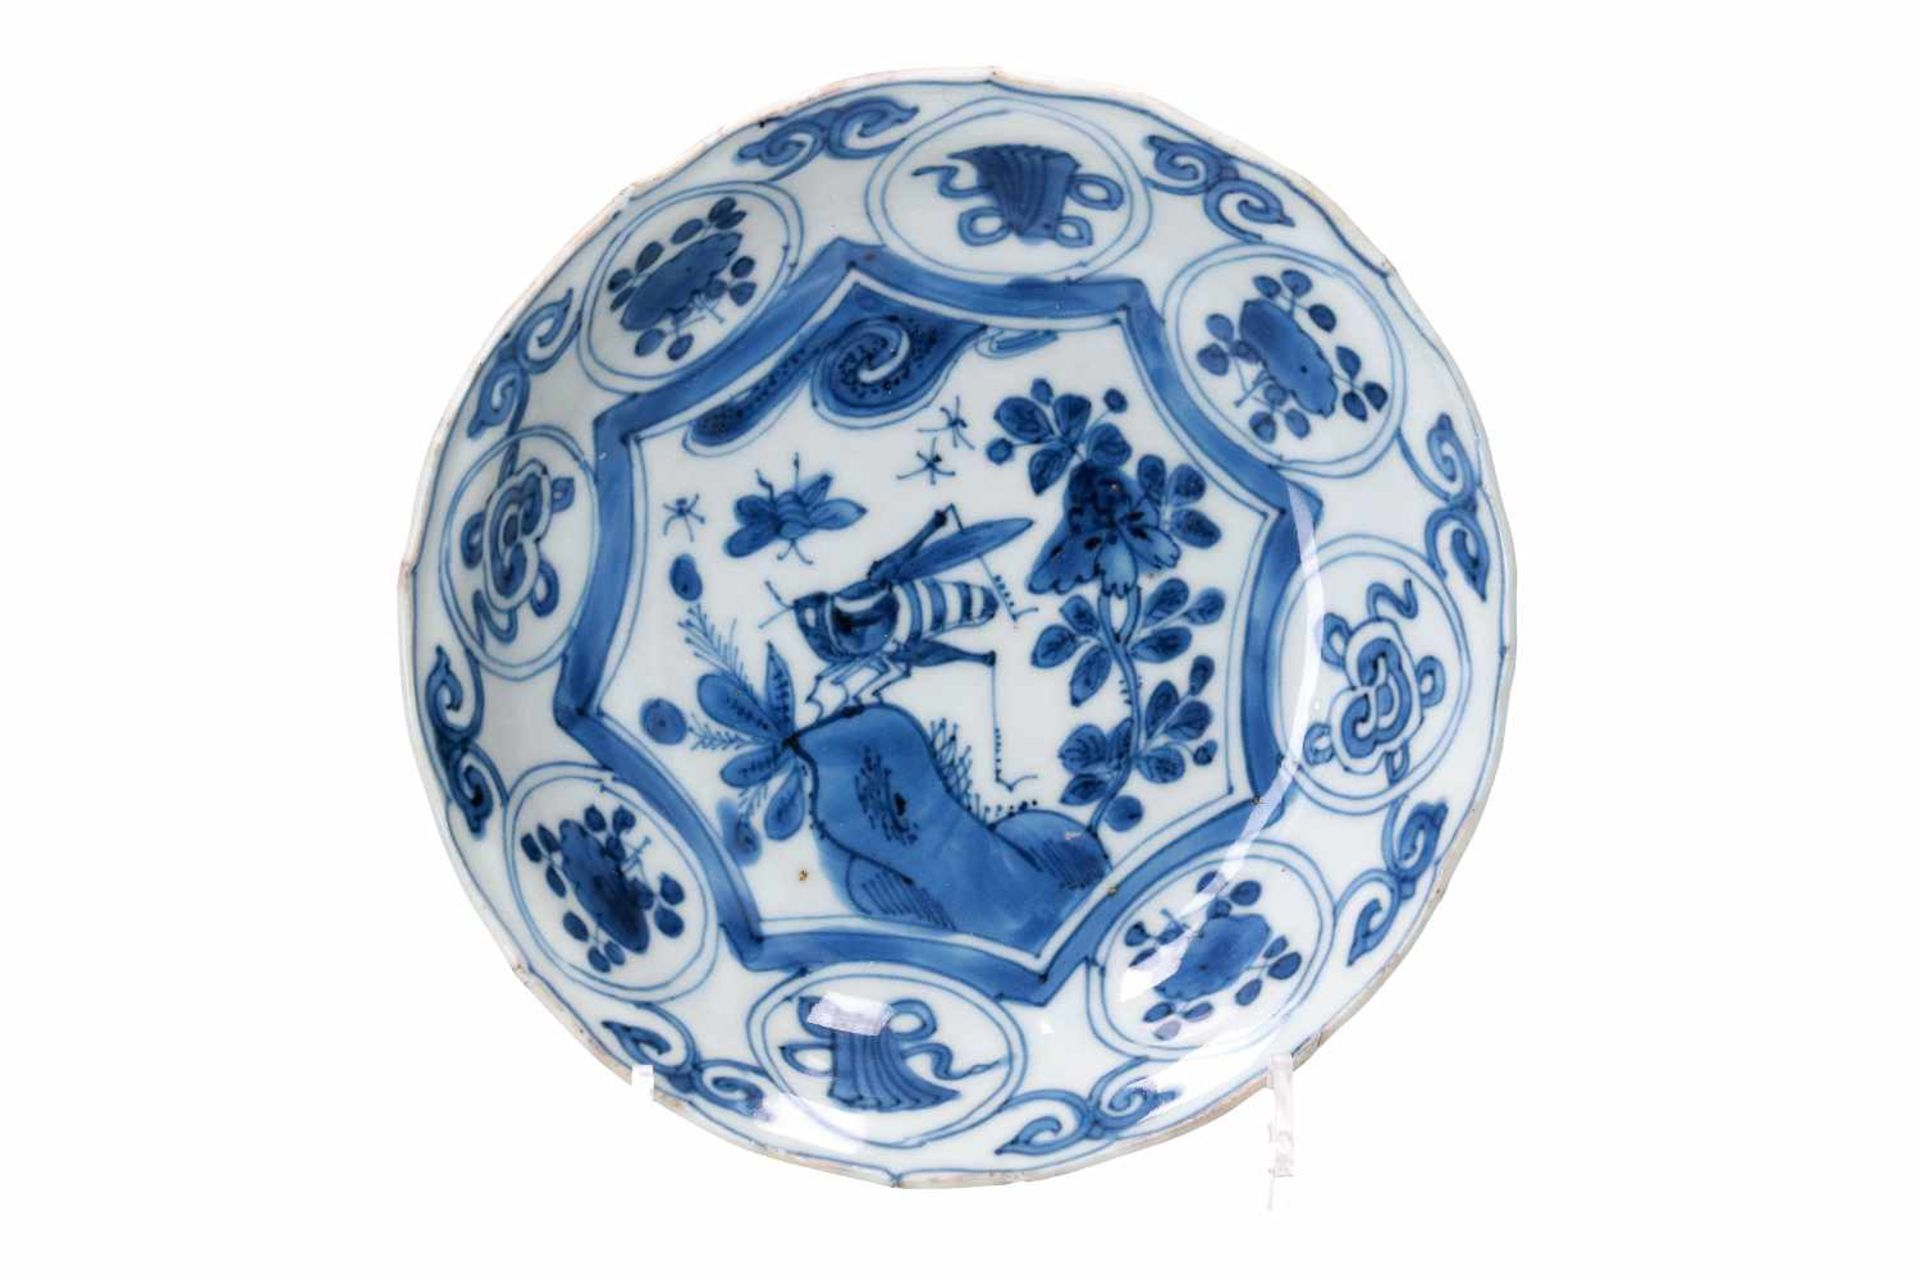 A blue and white 'kraak' porcelain dish, decorated with flowers, a butterfly and a cricket.